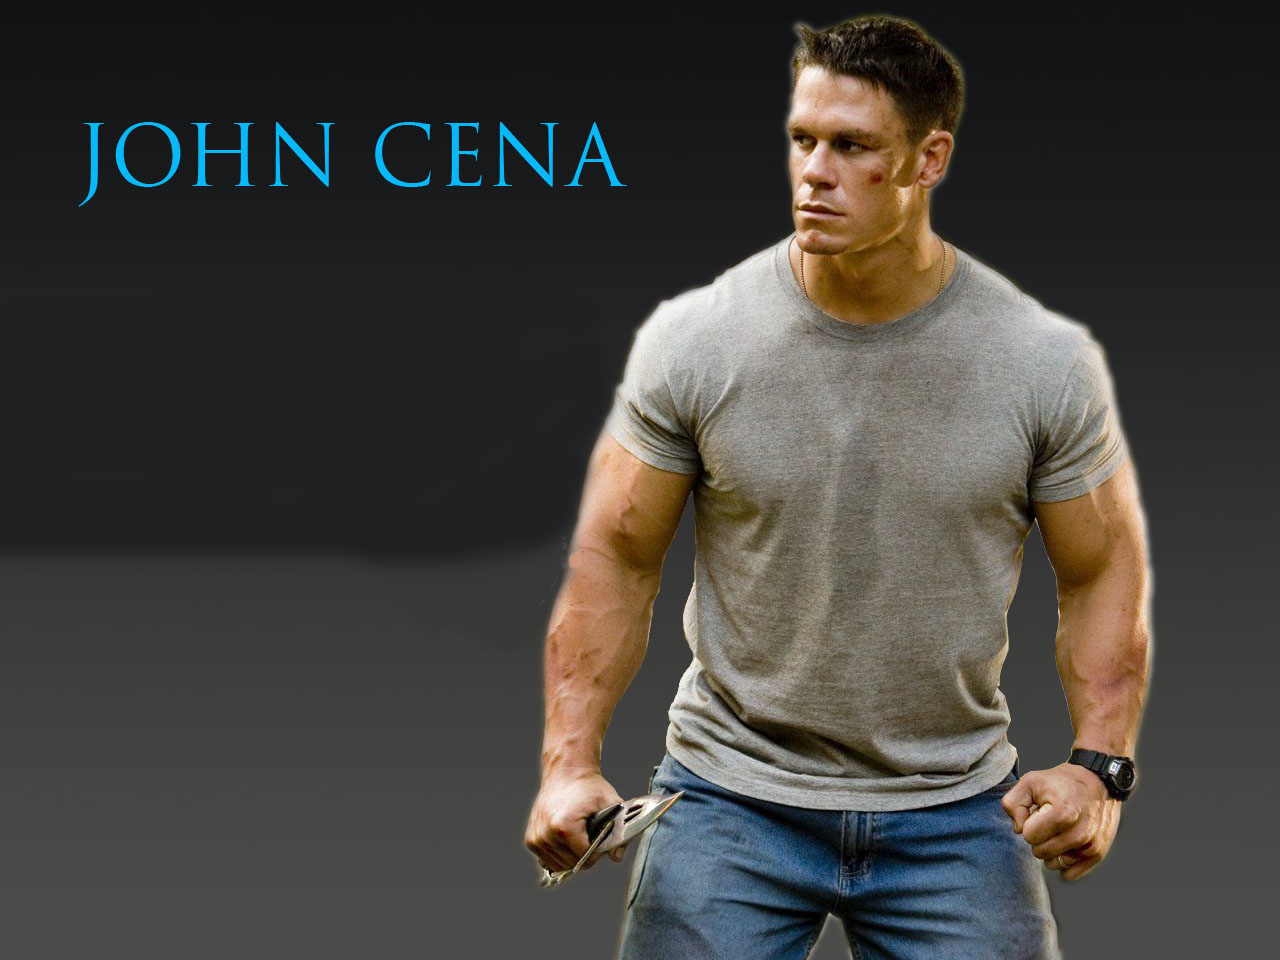 john cena latest wallpapers john cena latest wallpapers john cena 1280x960